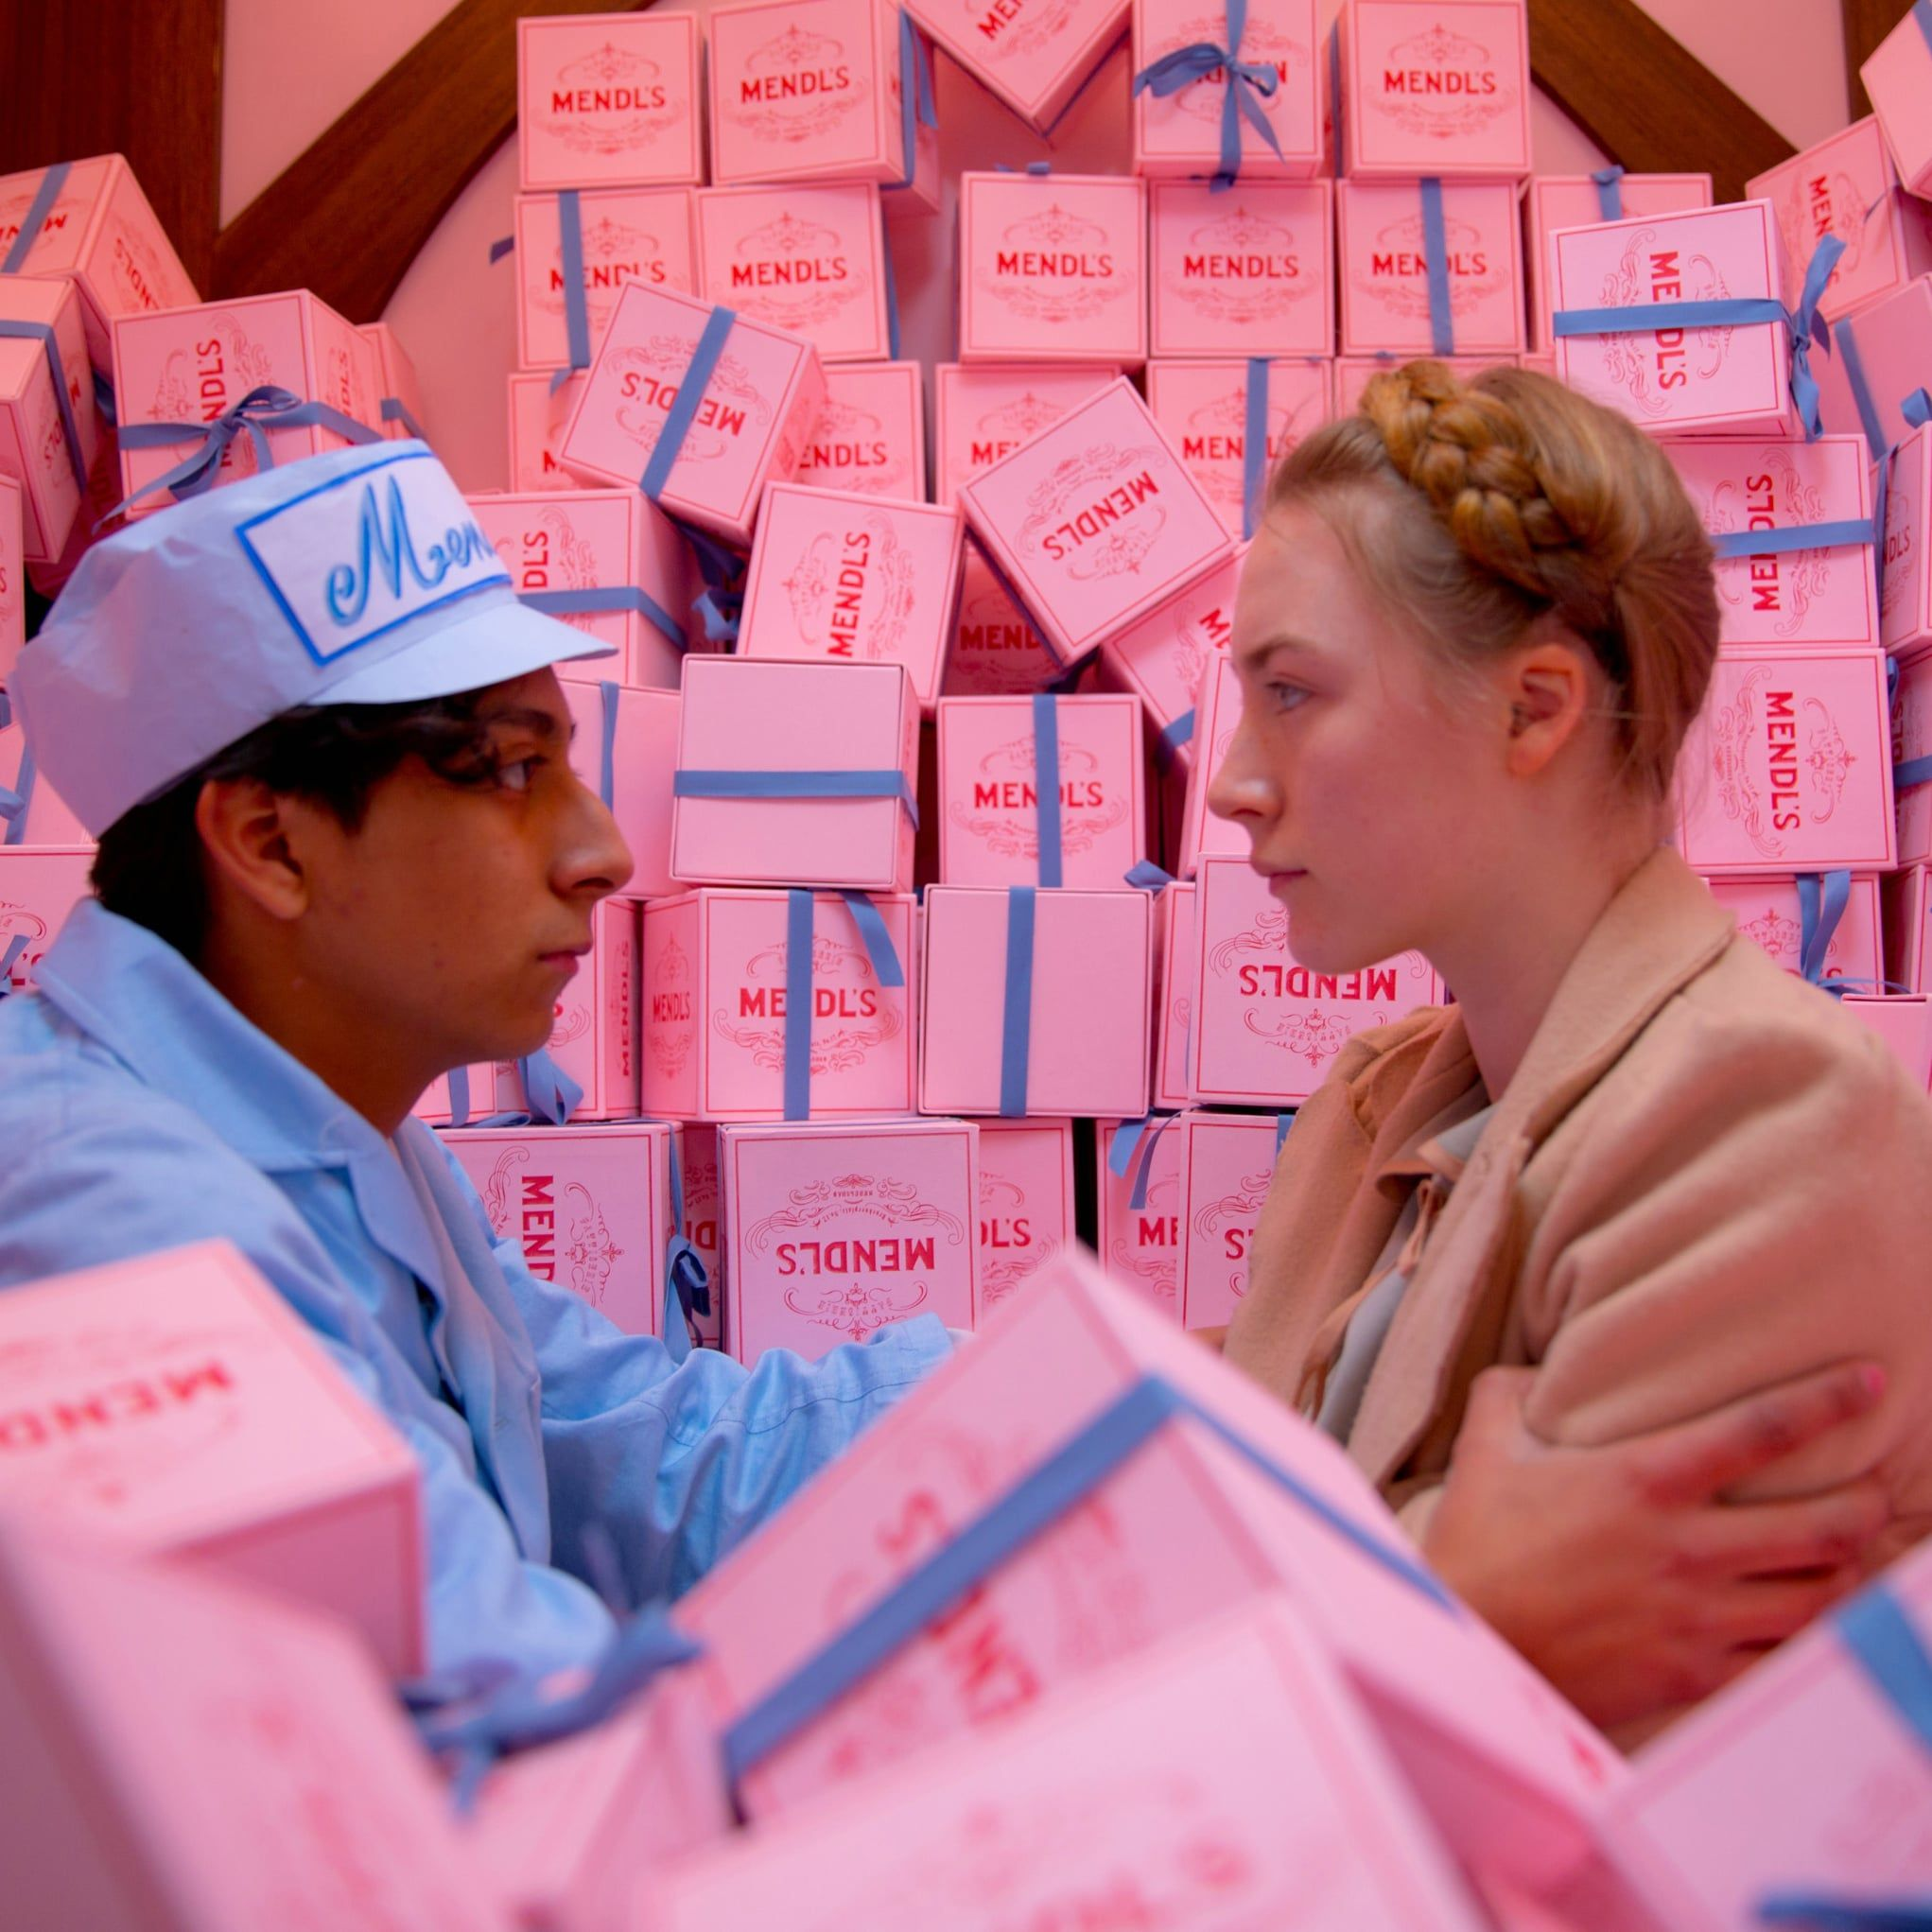 Colour in Film - The Work of Wes Anderson